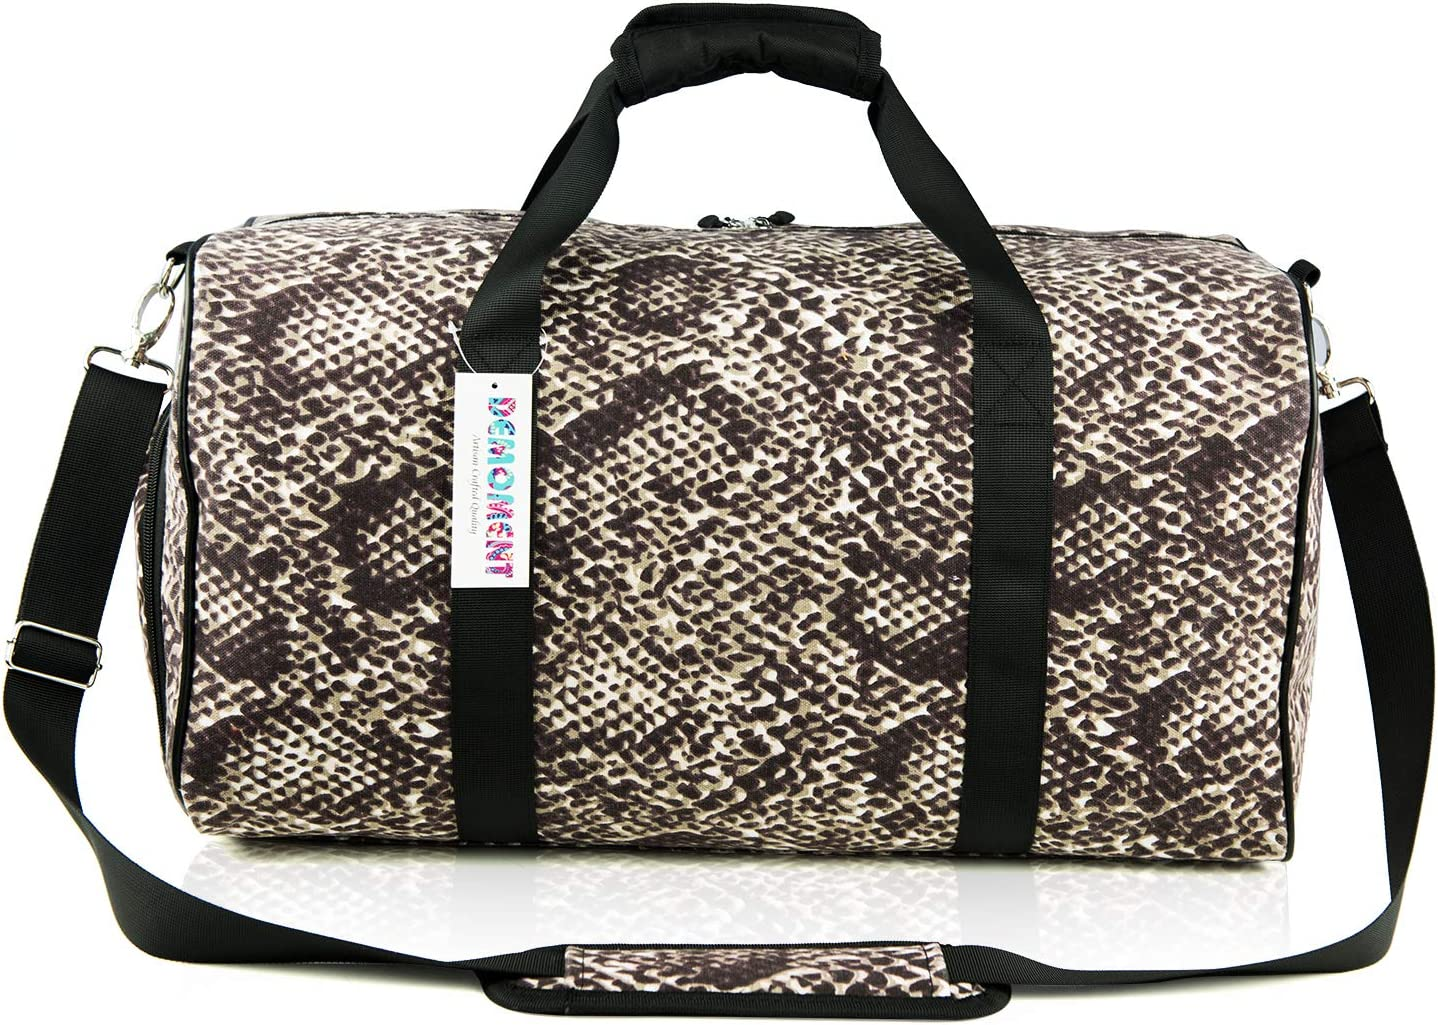 Sloth/_Ttb/_10 Sports Gym Bag with Shoes Compartment Travel Duffel Bag for Men and Women